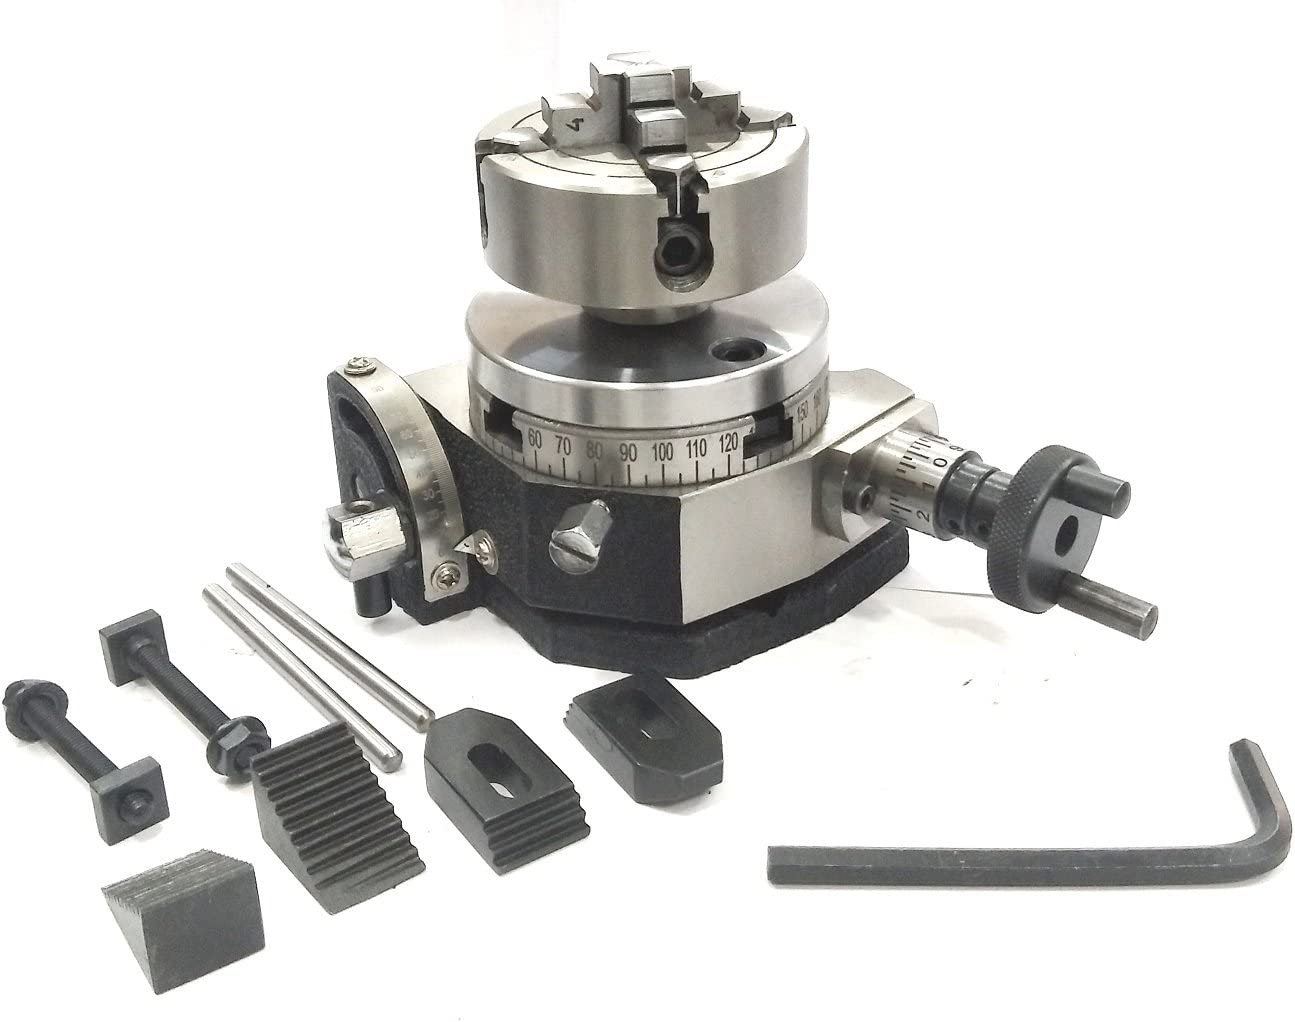 ENGINEERING TOOLS SUITABLE BACK PLATE /& T NUTS BOLTS /& M6 CLAMP KIT 3 INCHES// 80 MM TILTING ROTARY TABLE WITH 70 MM 4 JAW INDEPENDENT CHUCK